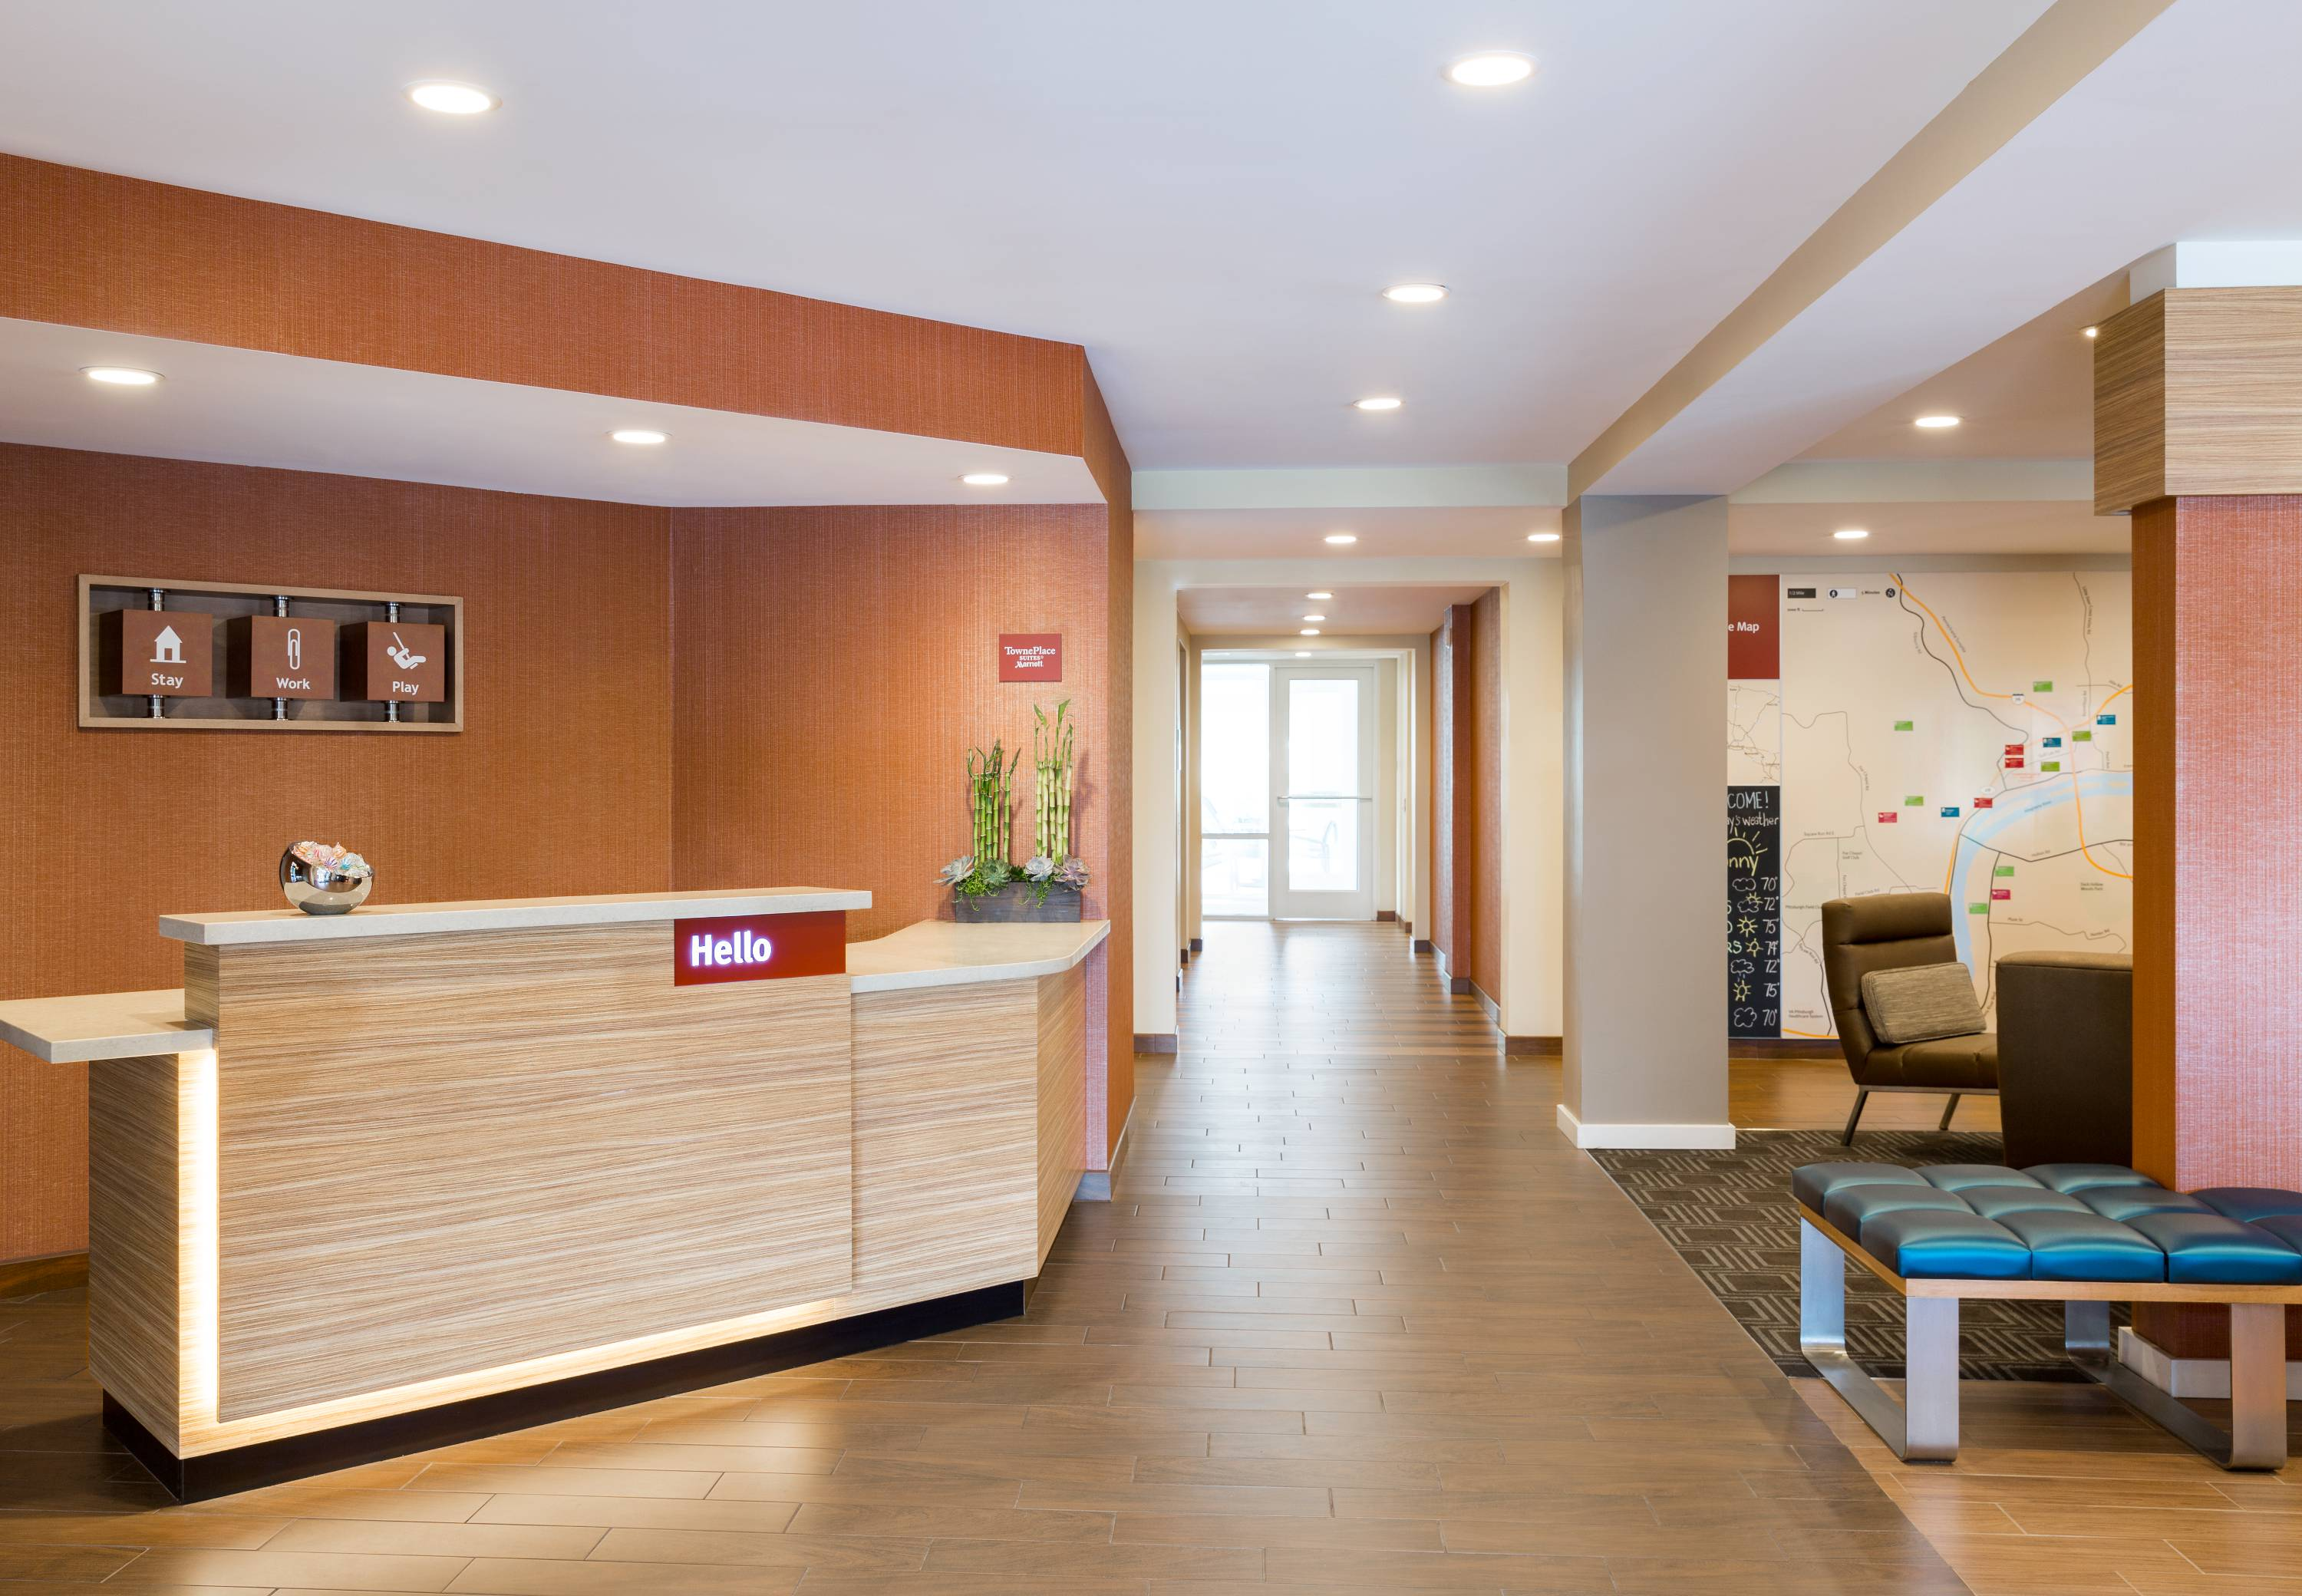 TownePlace Suites by Marriott Austin North/Lakeline image 2